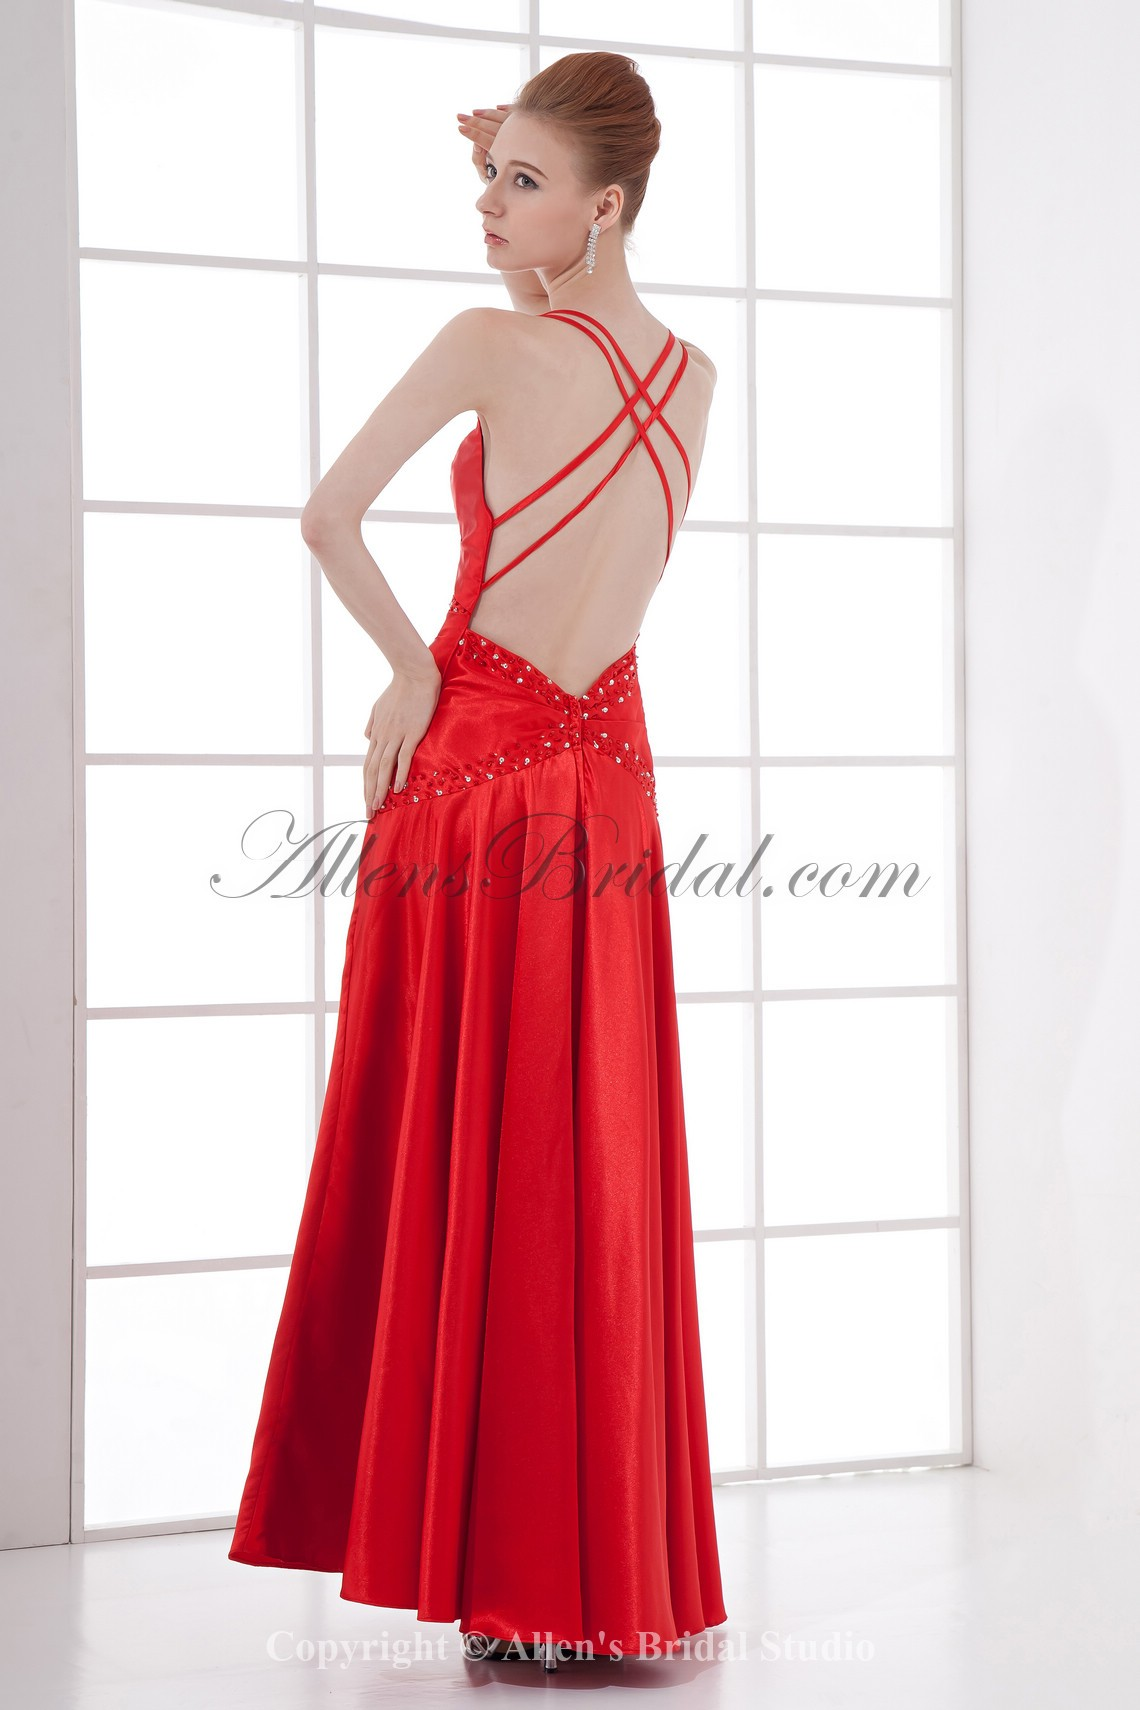 /72-572/satin-spaghetti-neckline-a-line-ankle-length-sequins-prom-dress.jpg